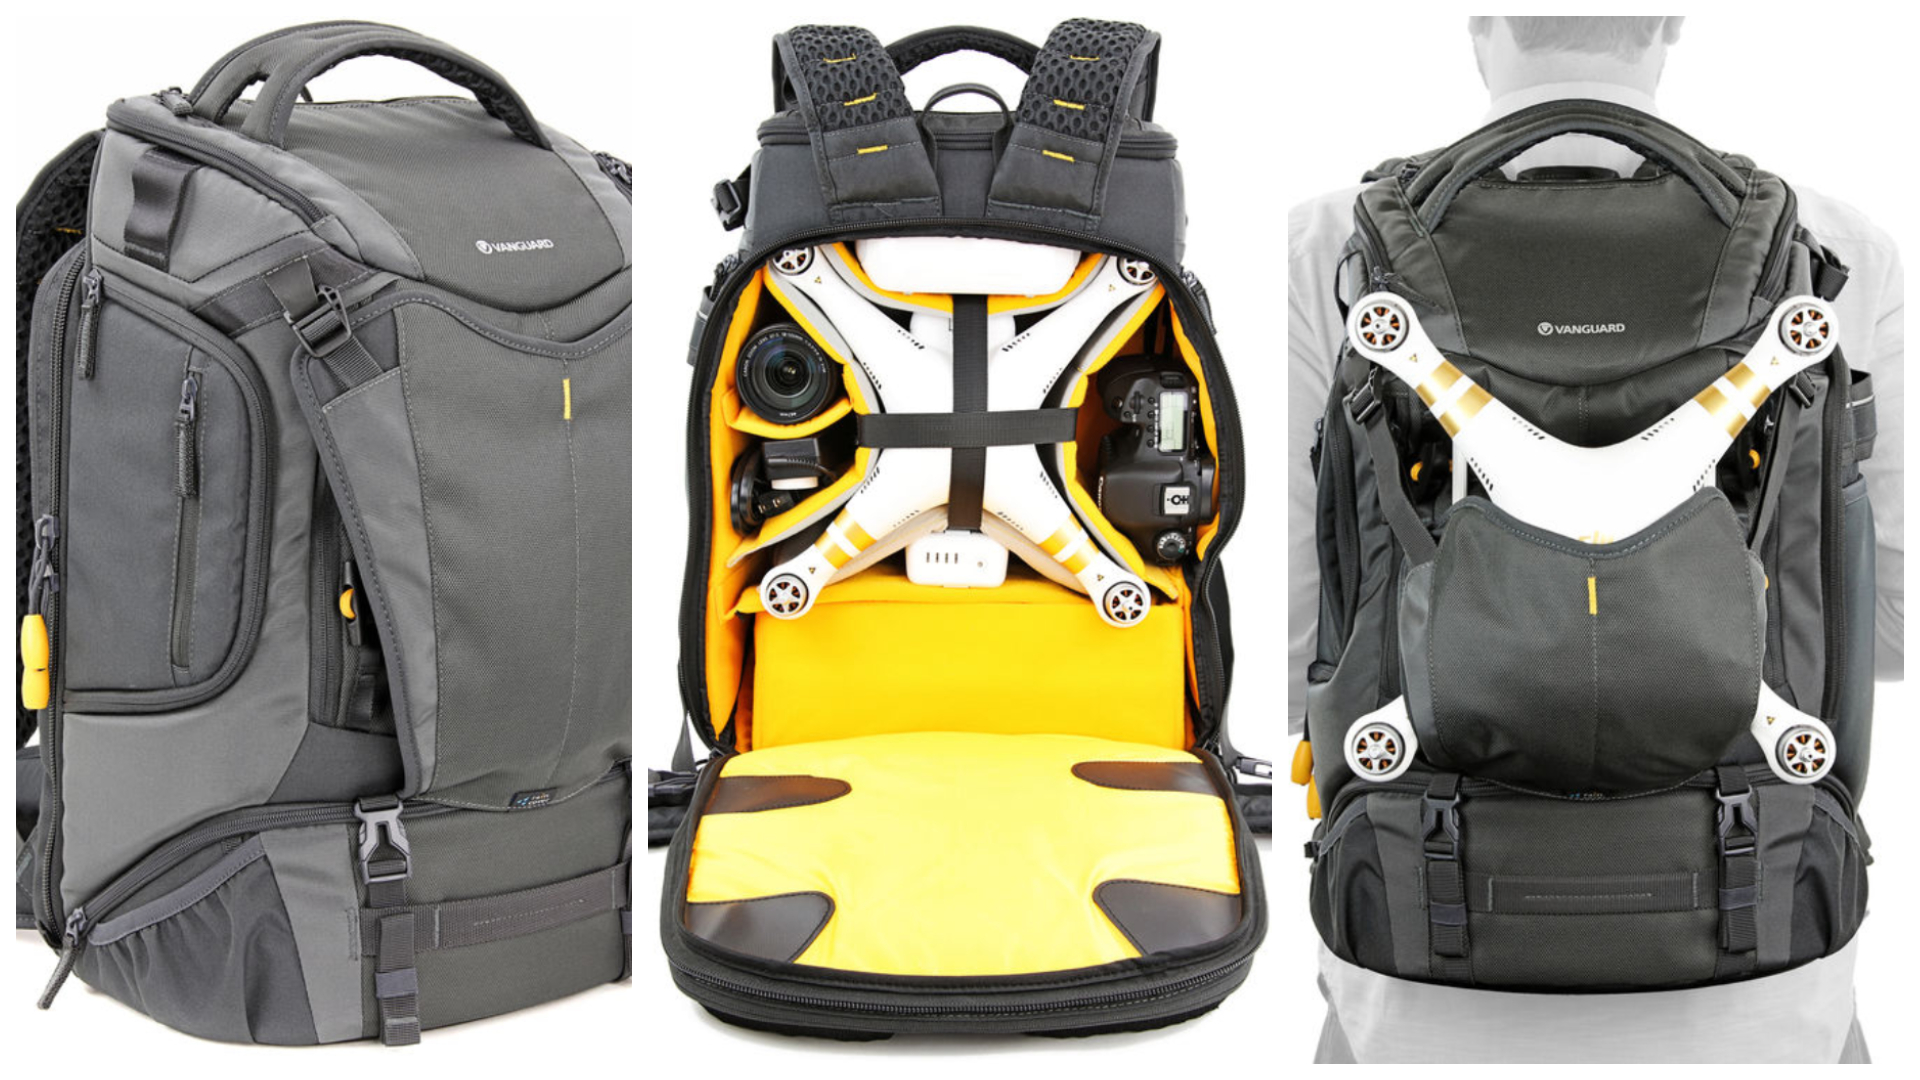 In Depth Gear Review: Vanguard Alta Sky 51D Backpack For